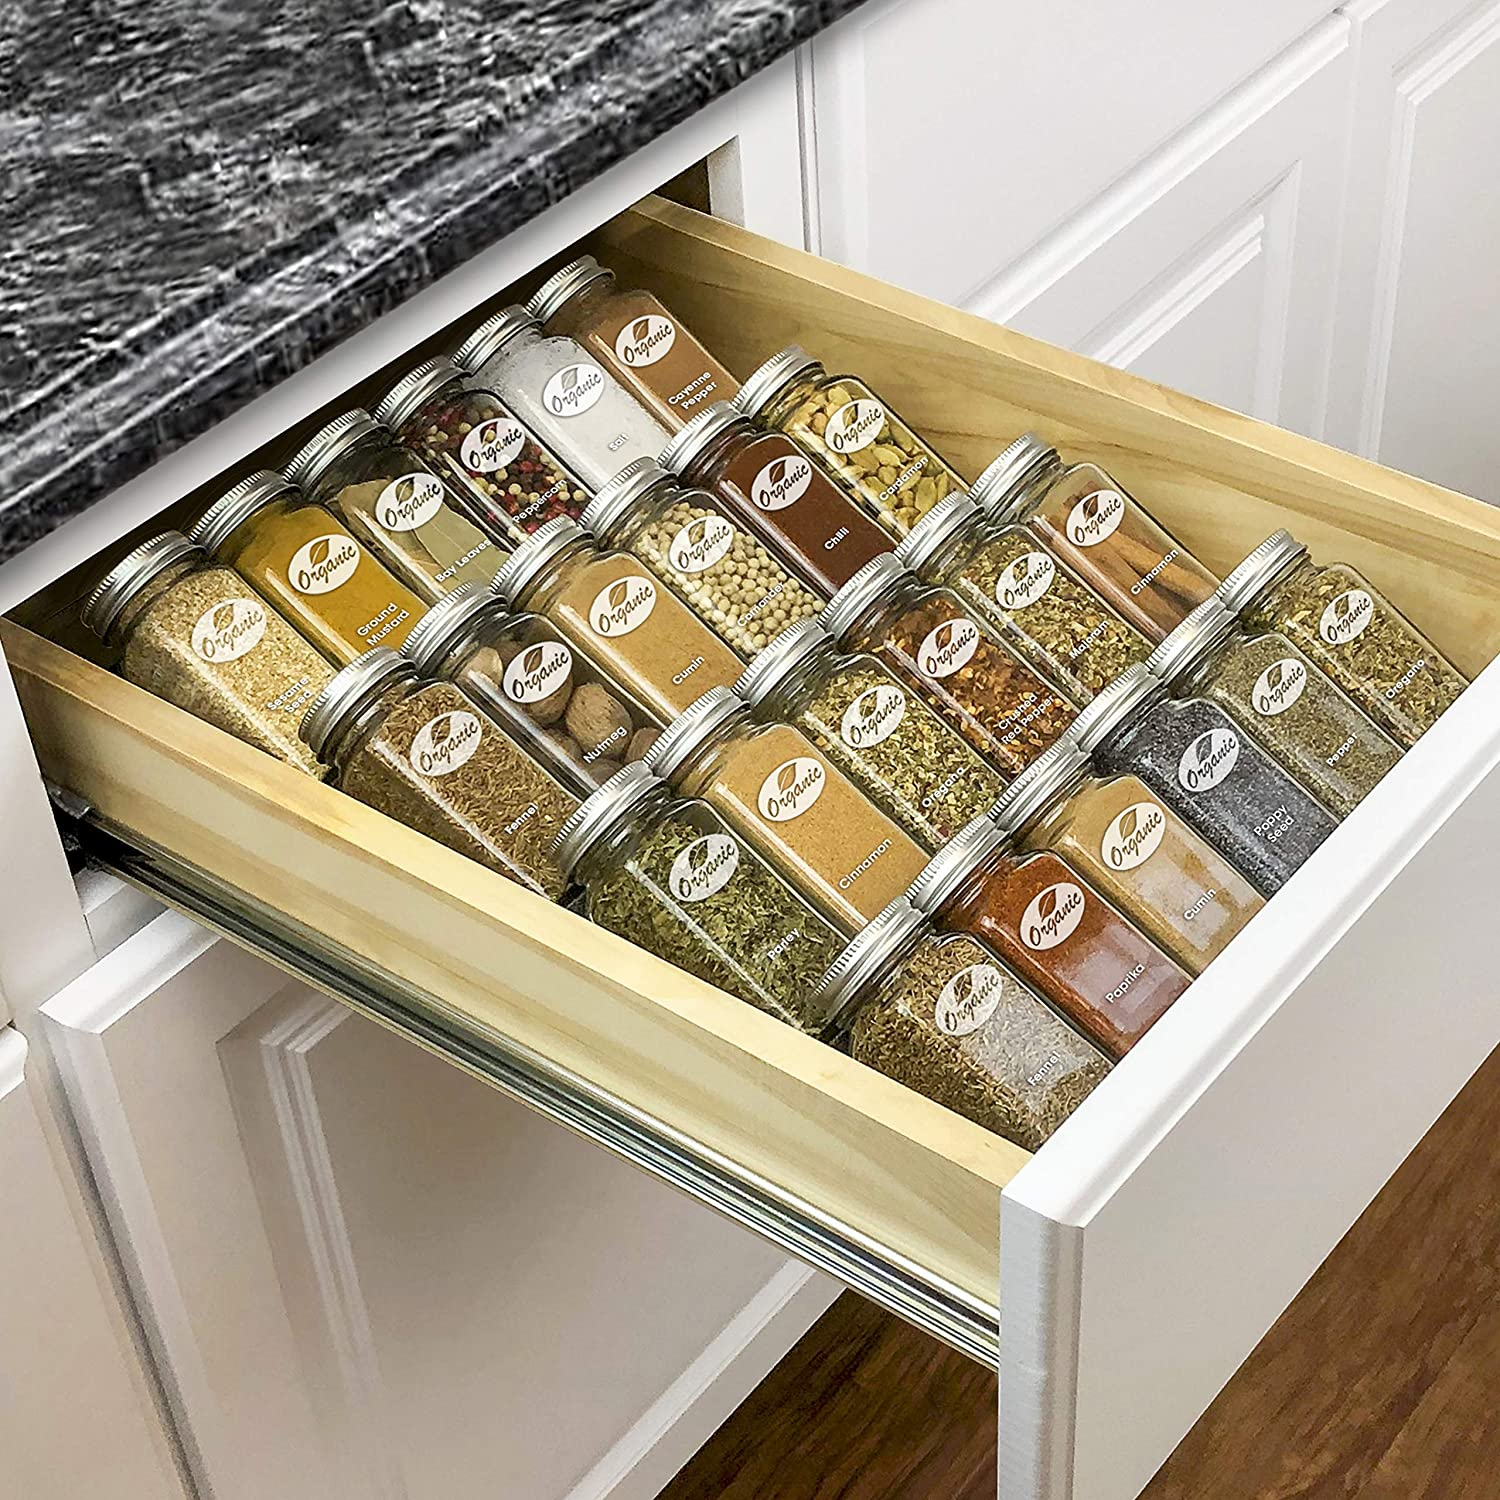 Kitchen Cabinet Drawer Organizers Amazon.com: Lynk Professional Spice Rack Tray Insert 4 Tier Heavy